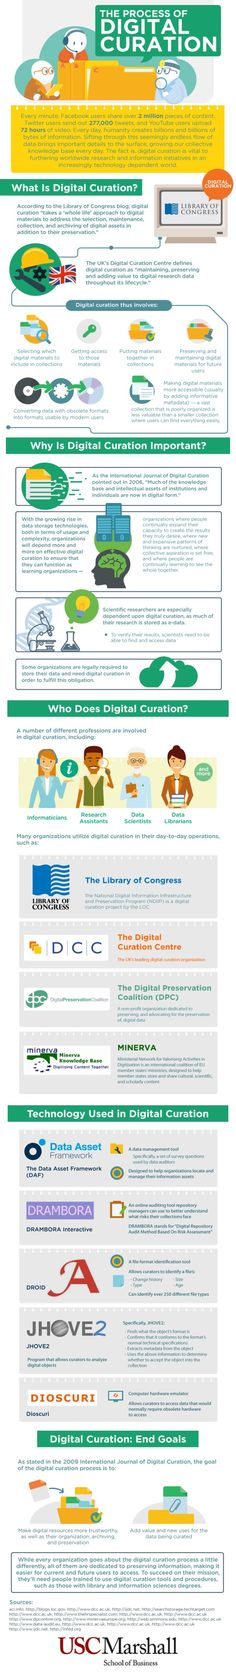 The process of Digital Curation - an infographic by USC Marshall - School of Business